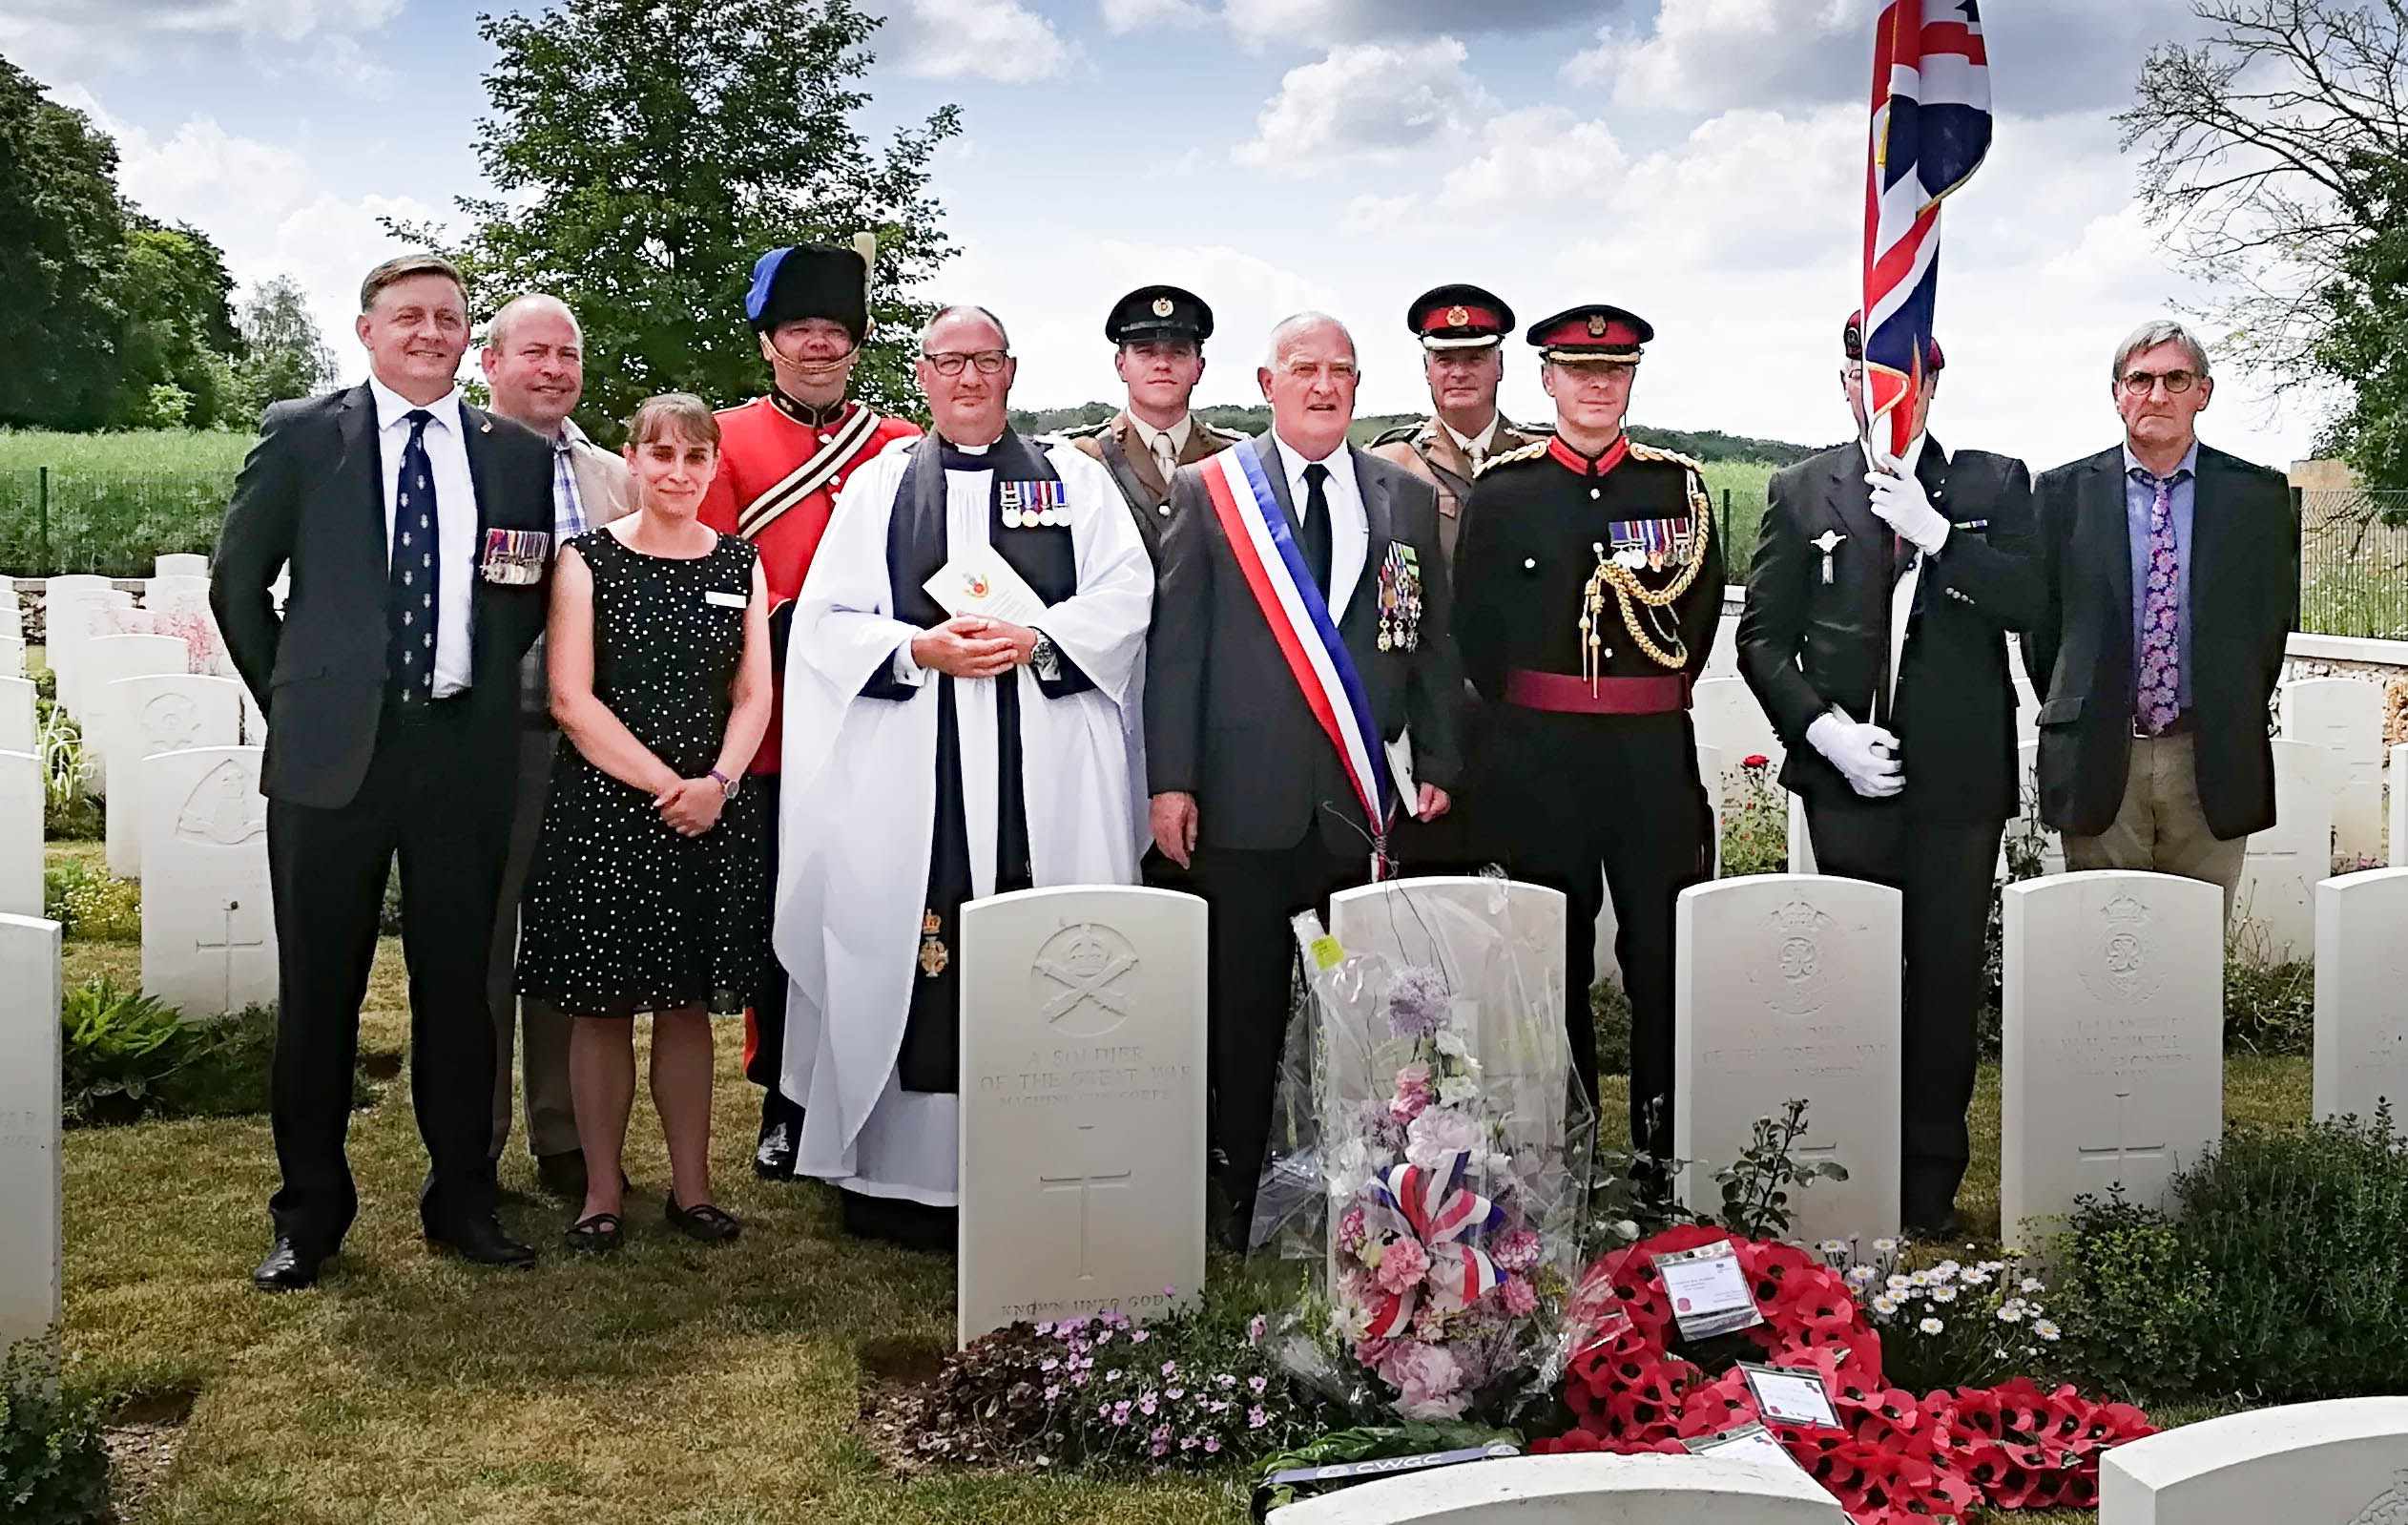 NEWS: David Tattersfield BBC Graves of Unknown Soldiers